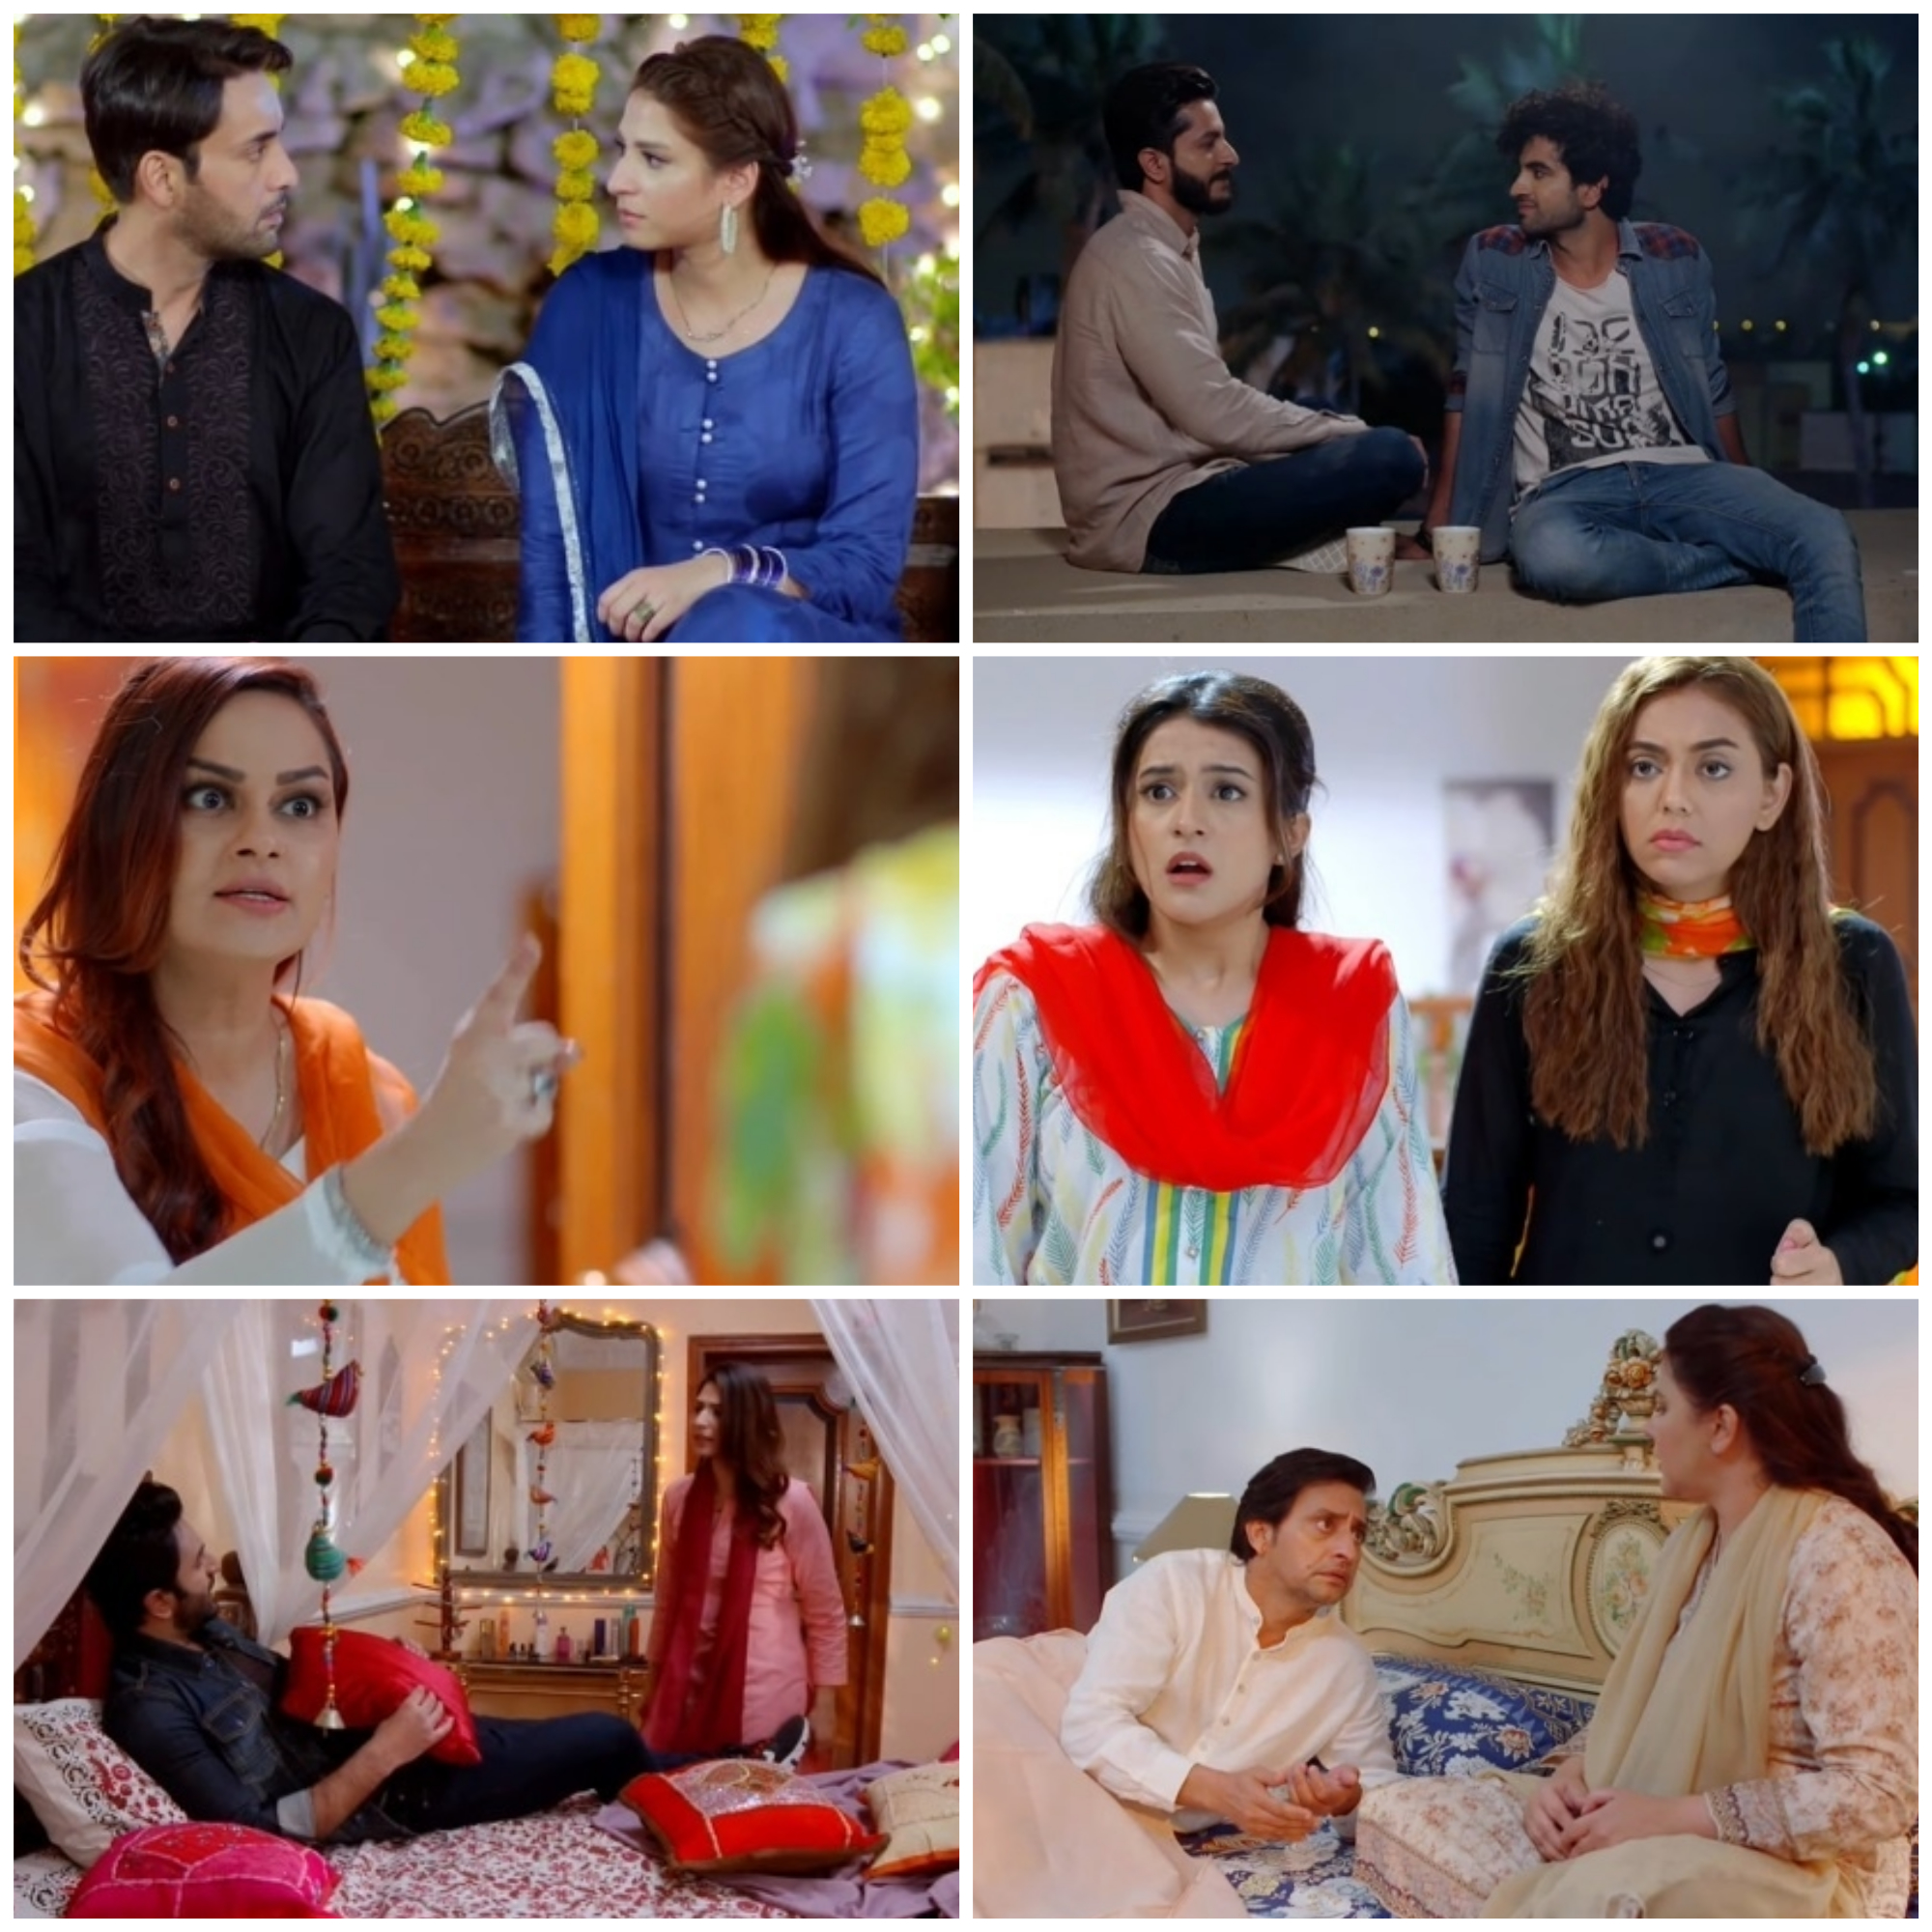 Shehnai Episode 19 Story Review - Looking For A Chance